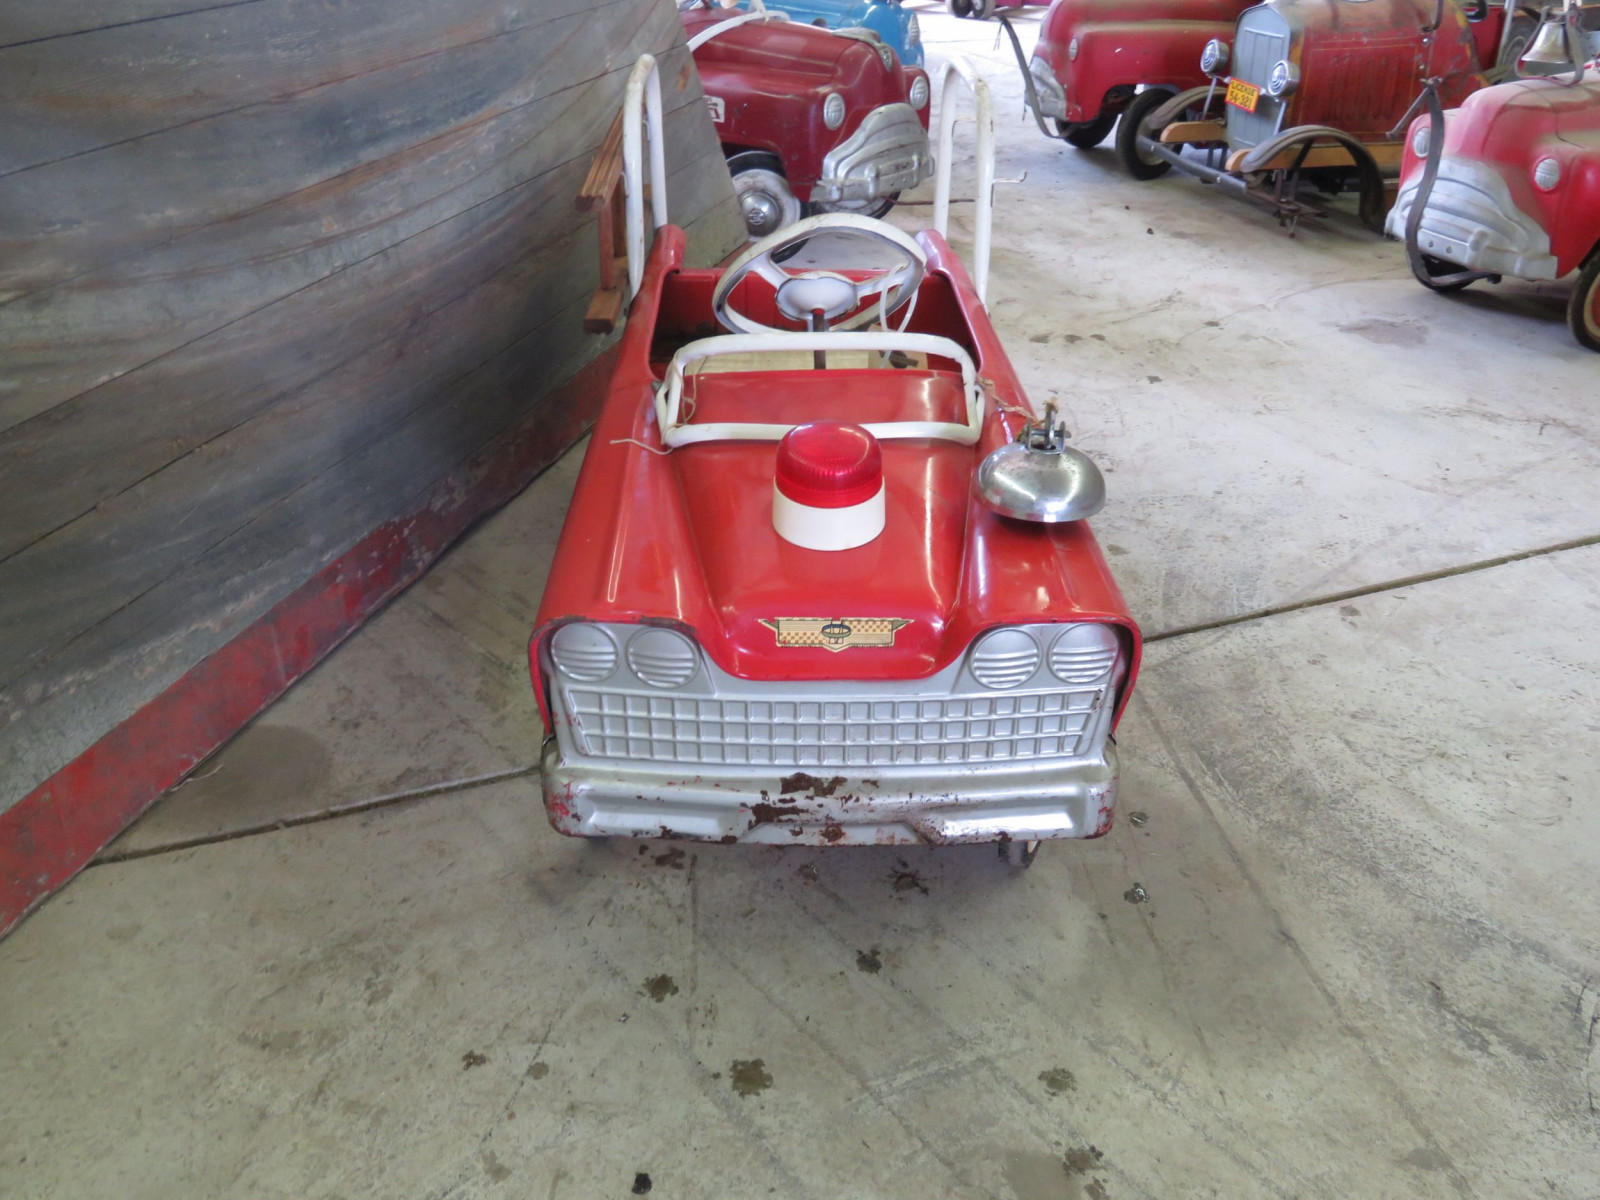 1955 Murray Station Wagon Pedal Car - Image 2